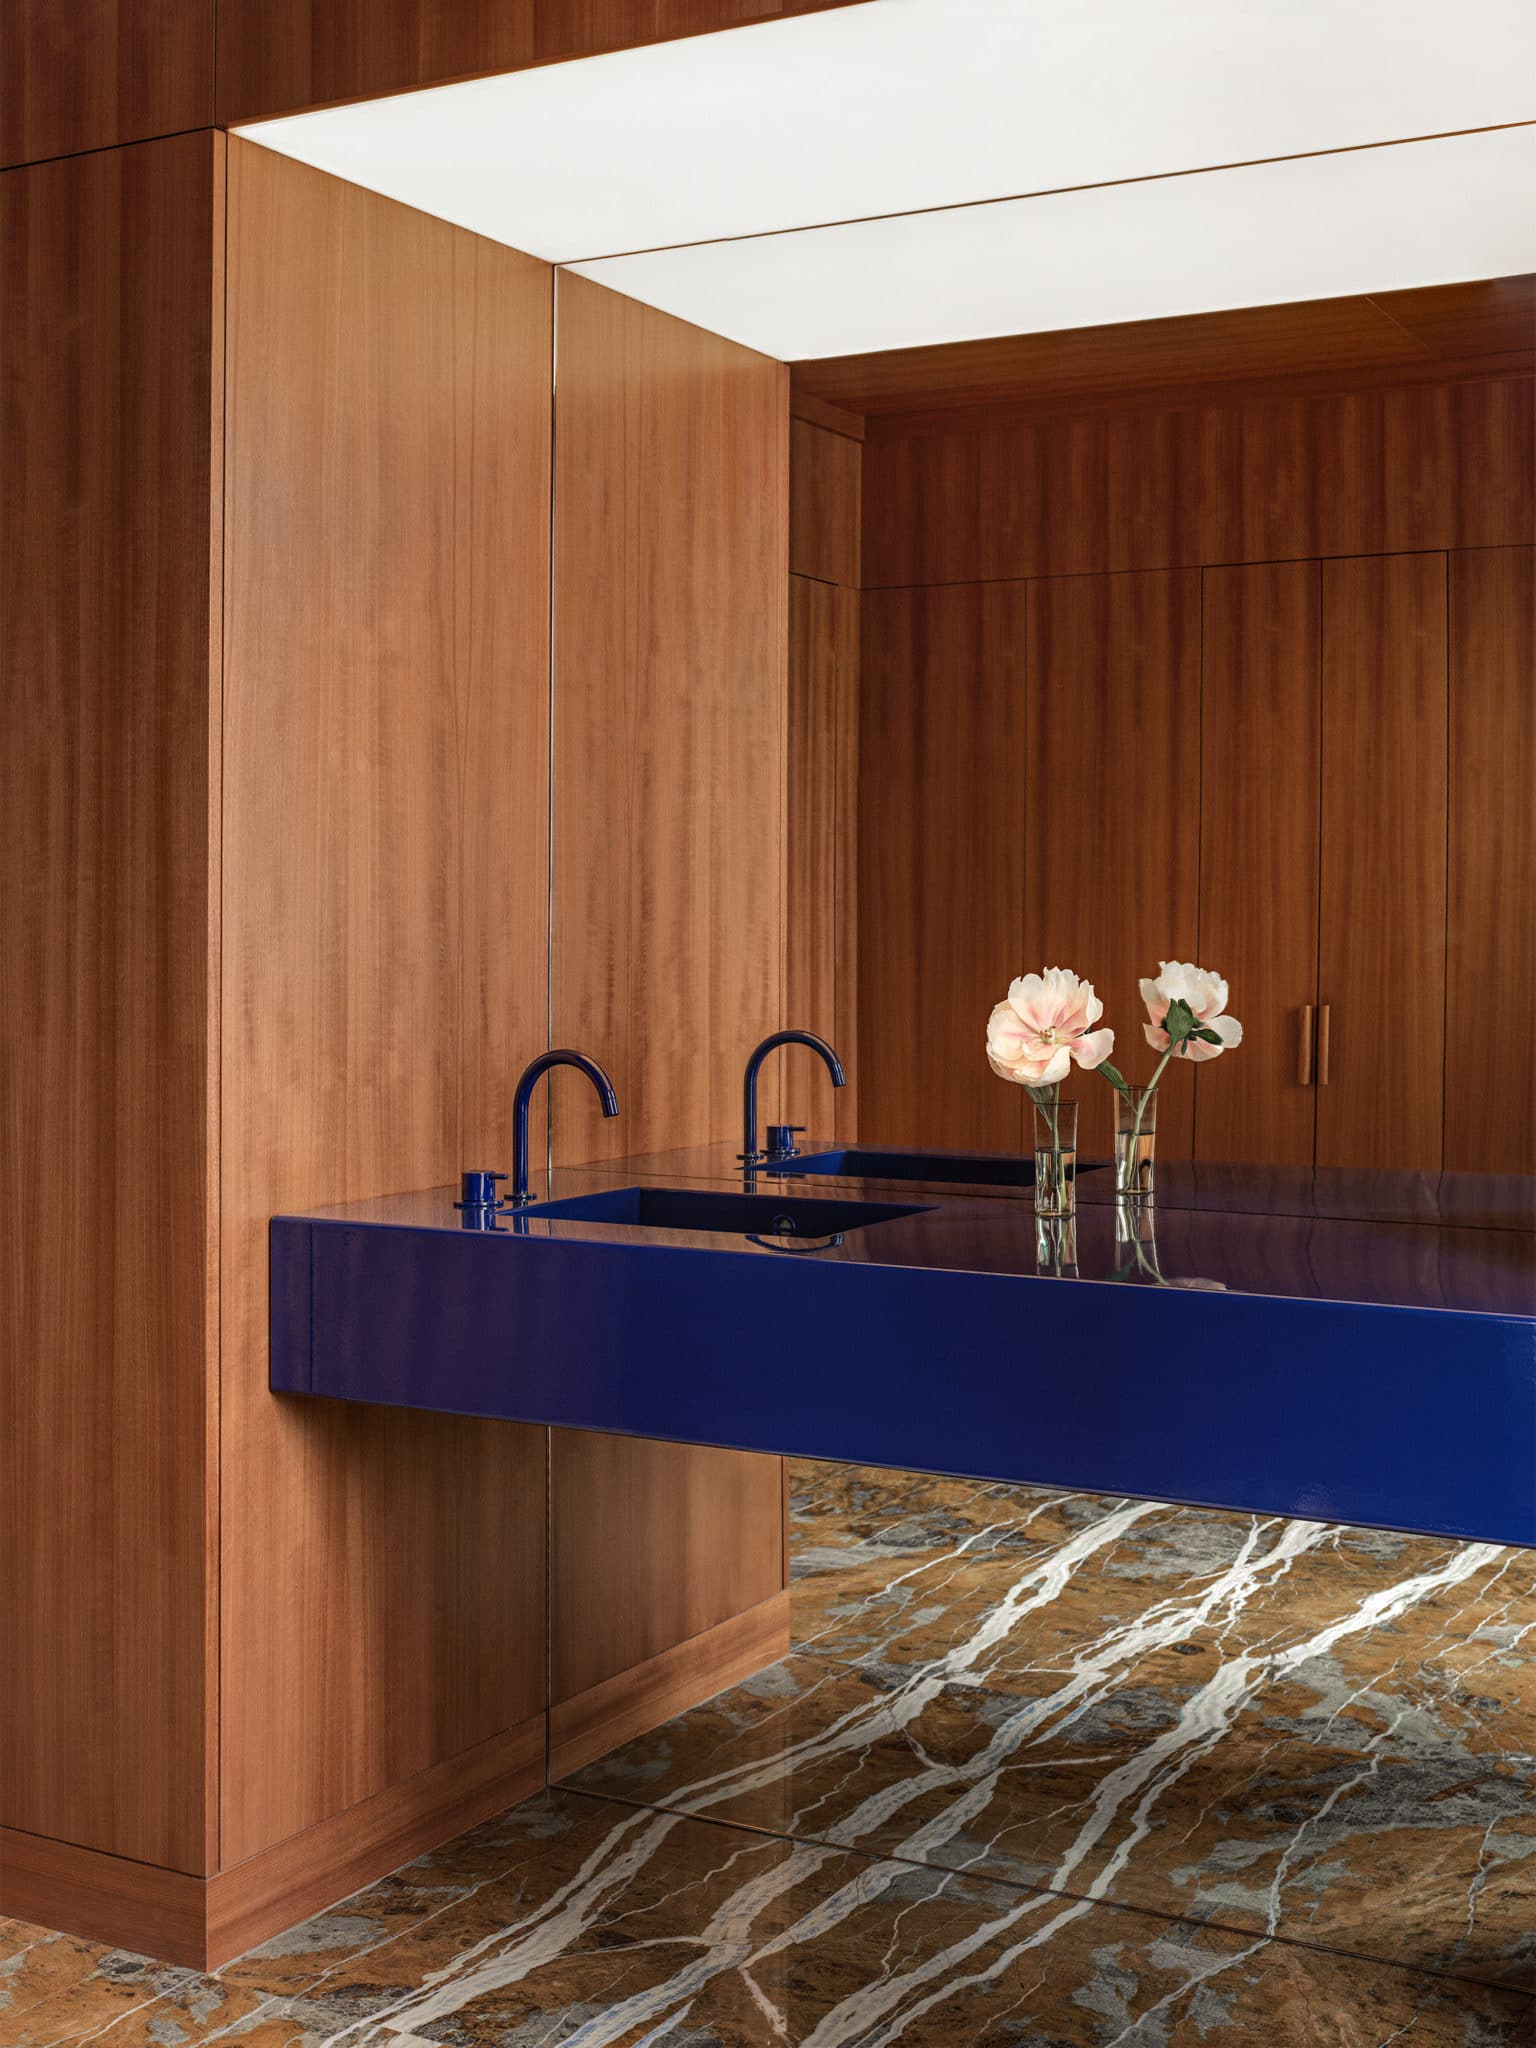 Halleroed designed an executive suite in New York